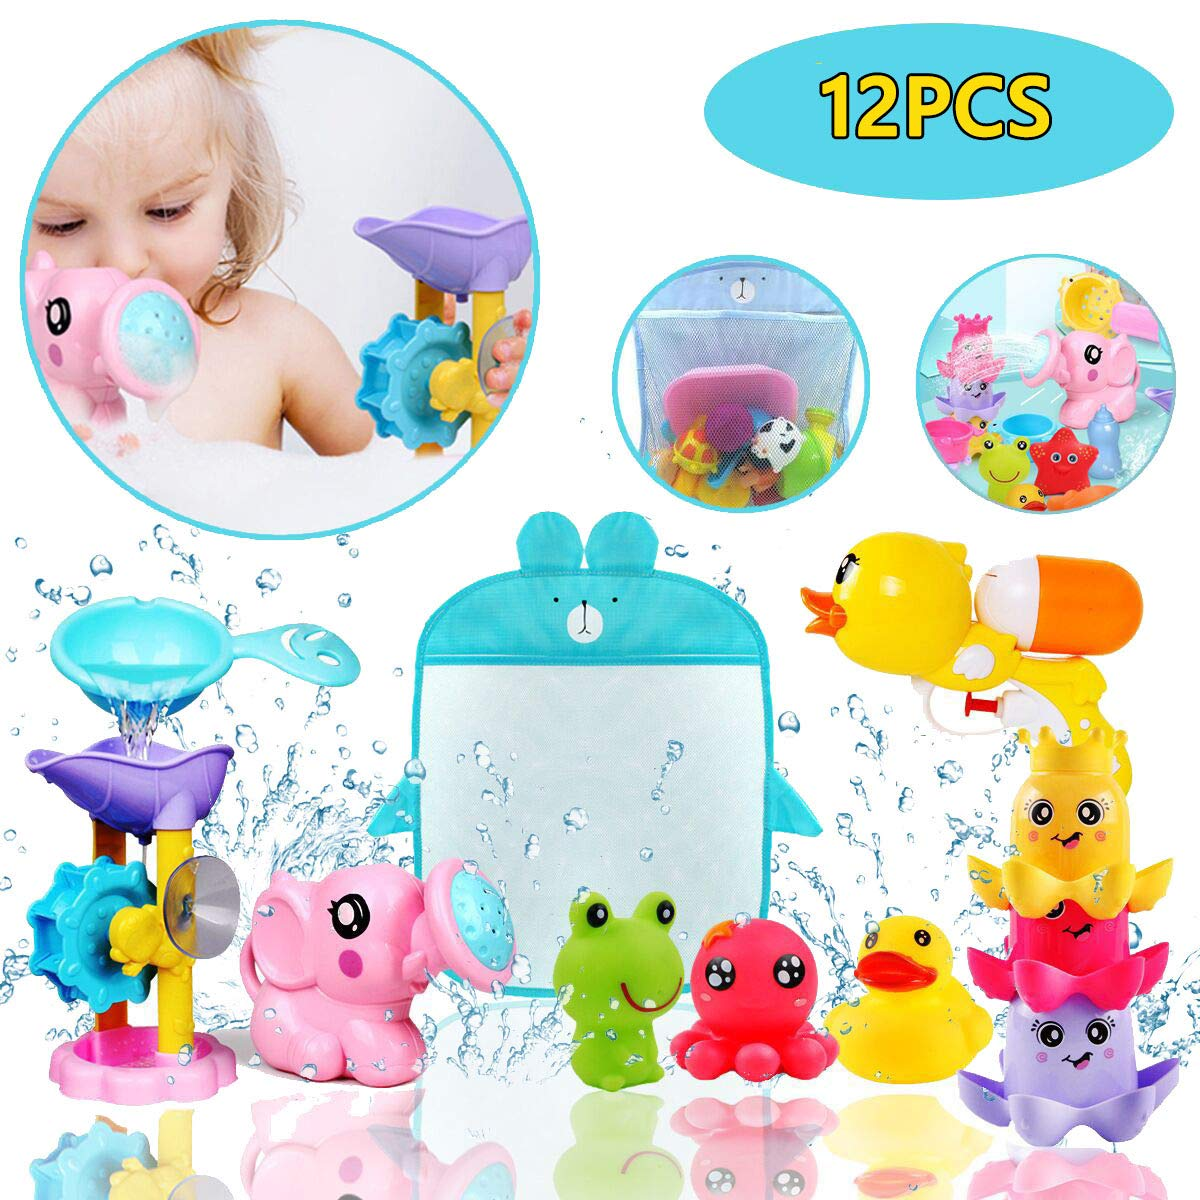 ZHENDUO 12 PCs Baby Bath Toys Set, Squirt Toy, Stacking Cups, Watering Can, Bath Toy Storage Organiser Baby Toys for Kids Bath Toys Birthday Gift for Toddlers Bathtub Toys Swimming Pool Toys